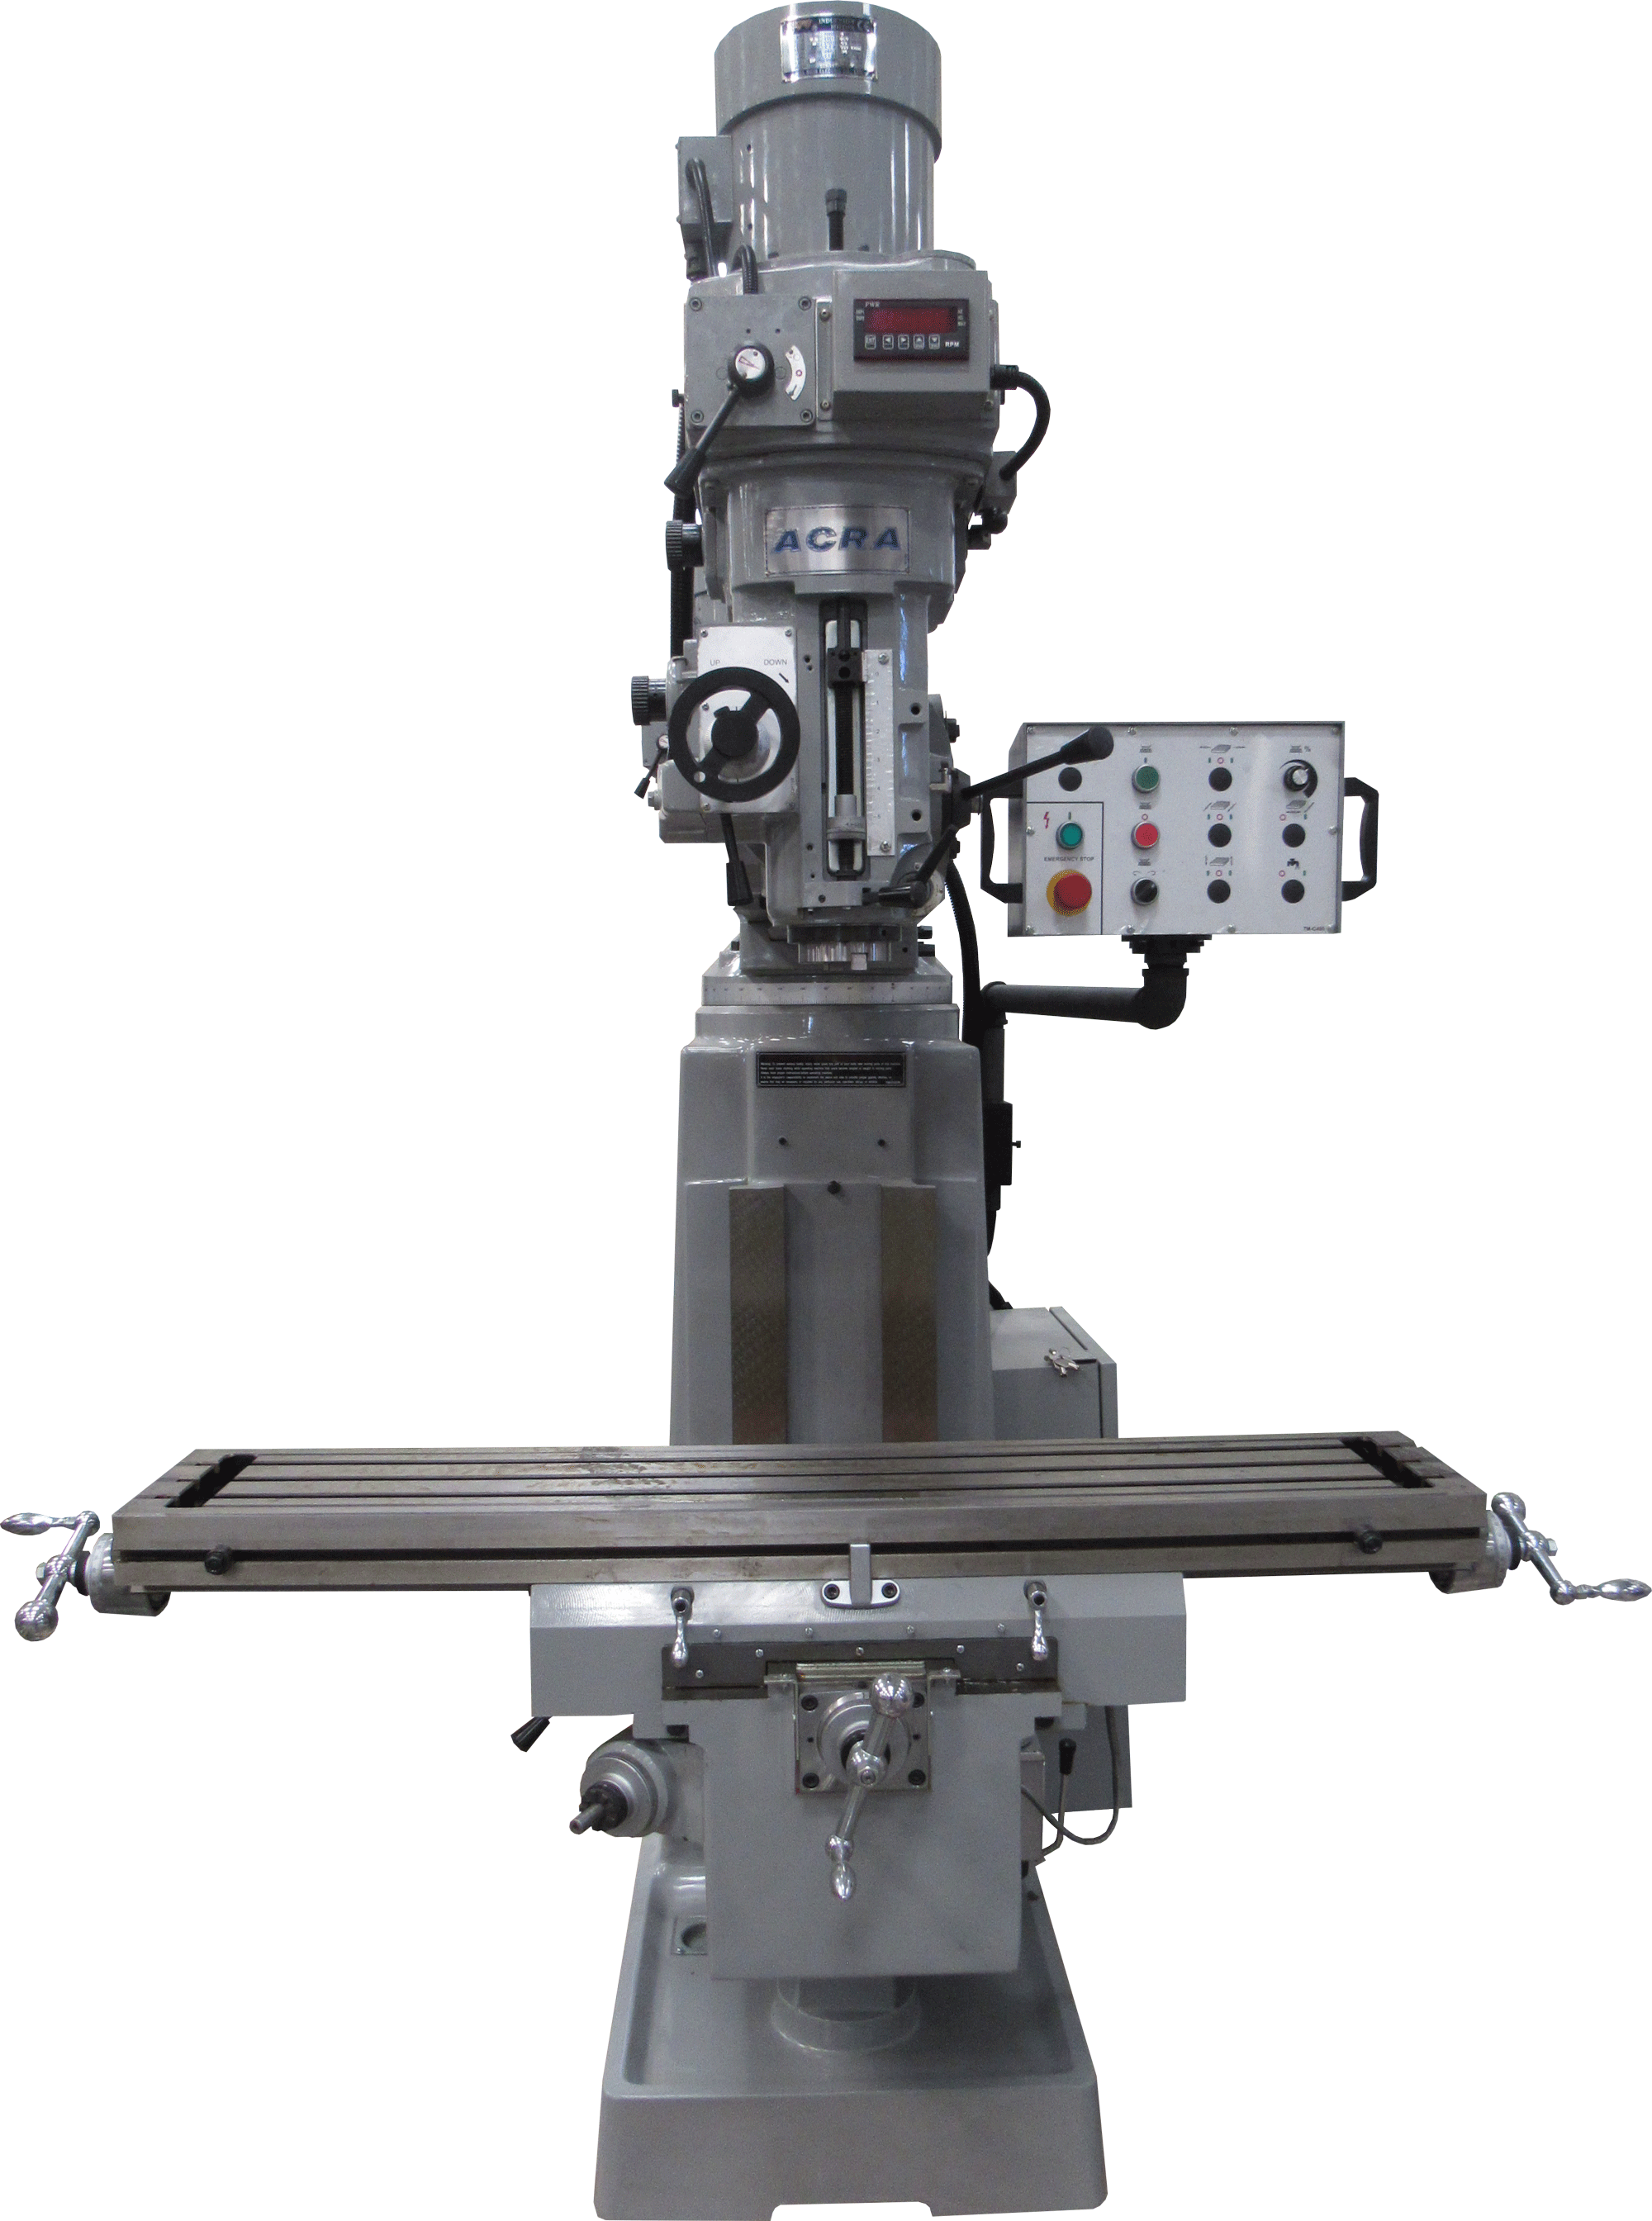 ACRA MODEL LCTM-3AC VERTICAL VARIABLE SPEED MILLING MACHINE WITH A/C INVERTER DRIVE